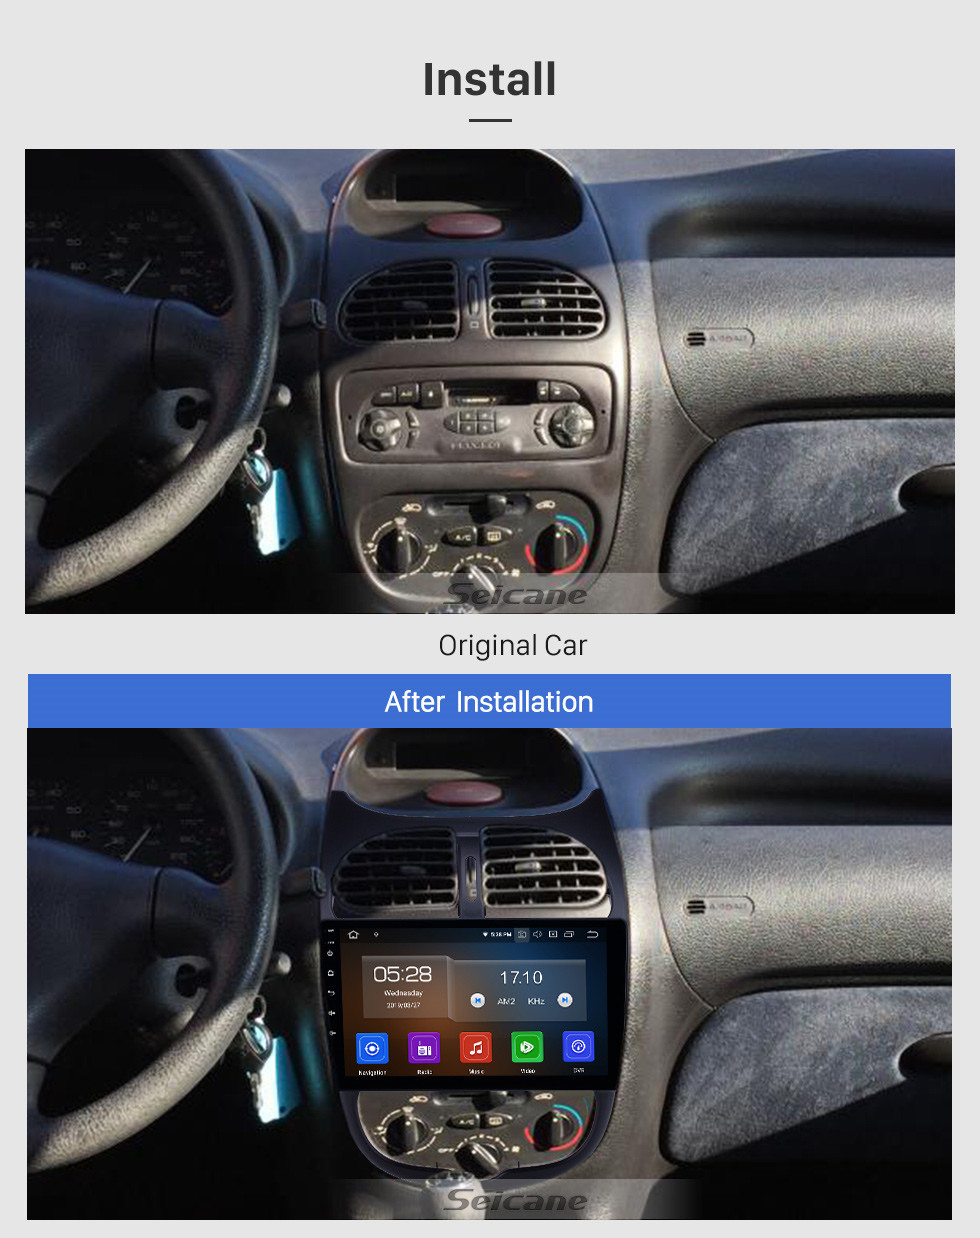 Seicane 9 inch Android 10.0 GPS Navigation Radio for 2000-2016 Peugeot 206 with HD Touchscreen Carplay AUX Bluetooth support 1080P